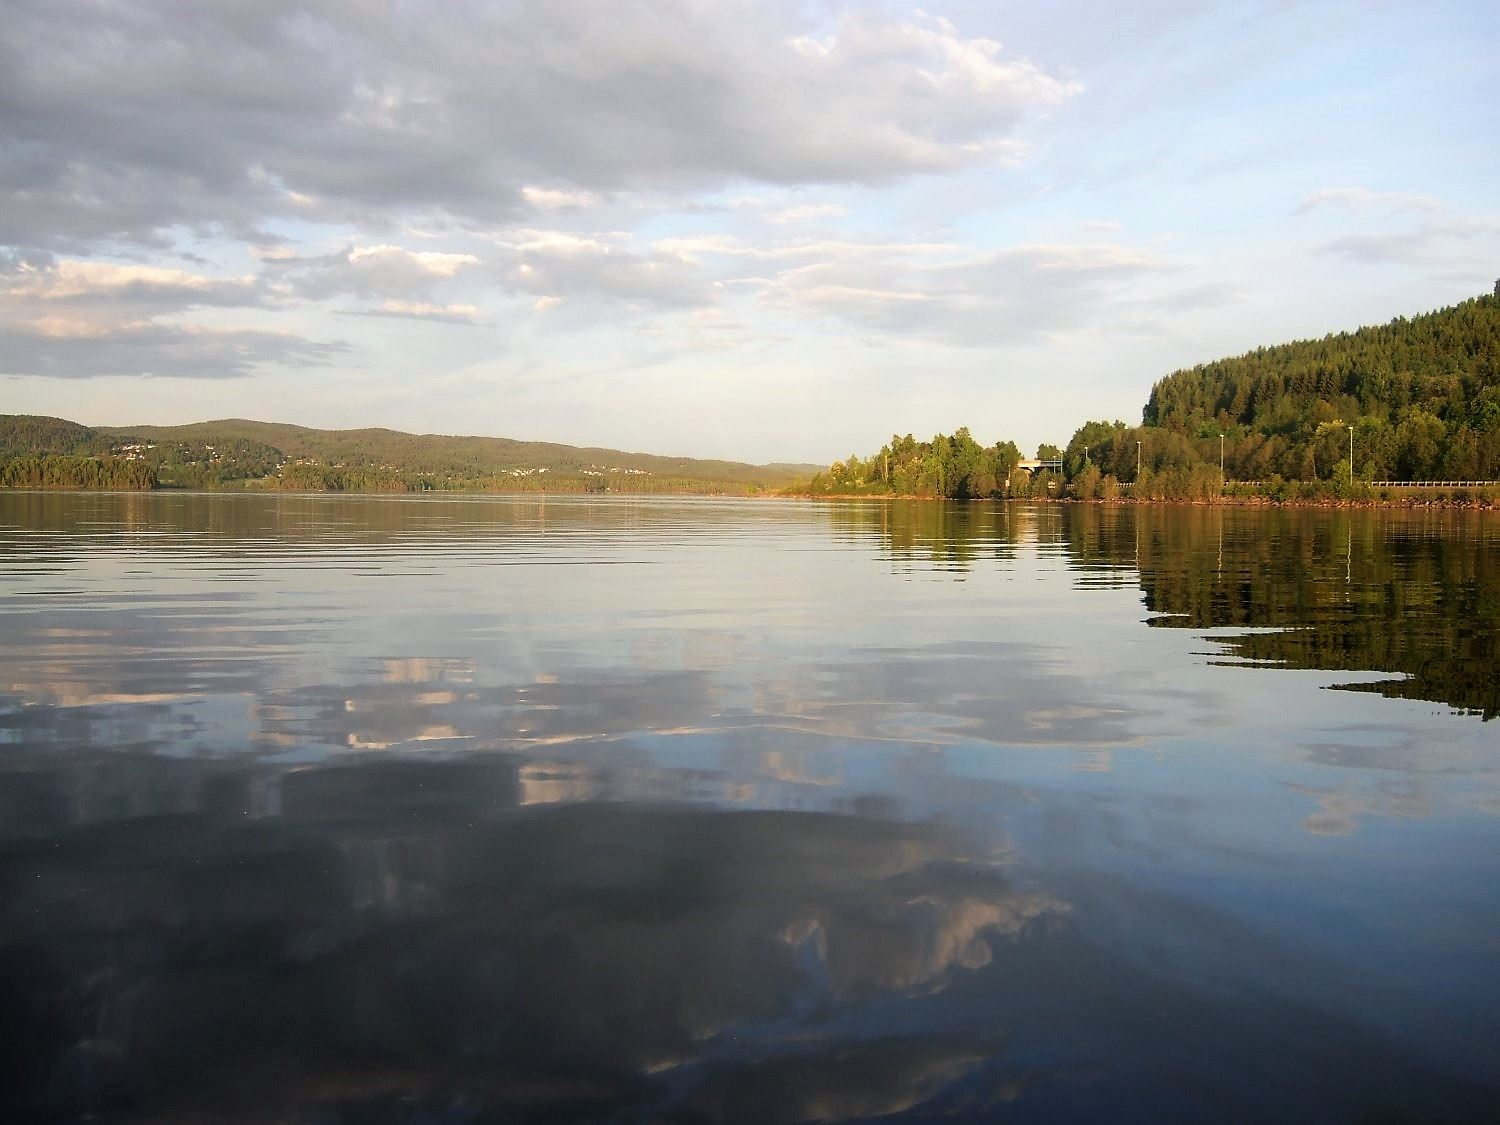 Fishing in lake Mjøsa and Lillehammer area